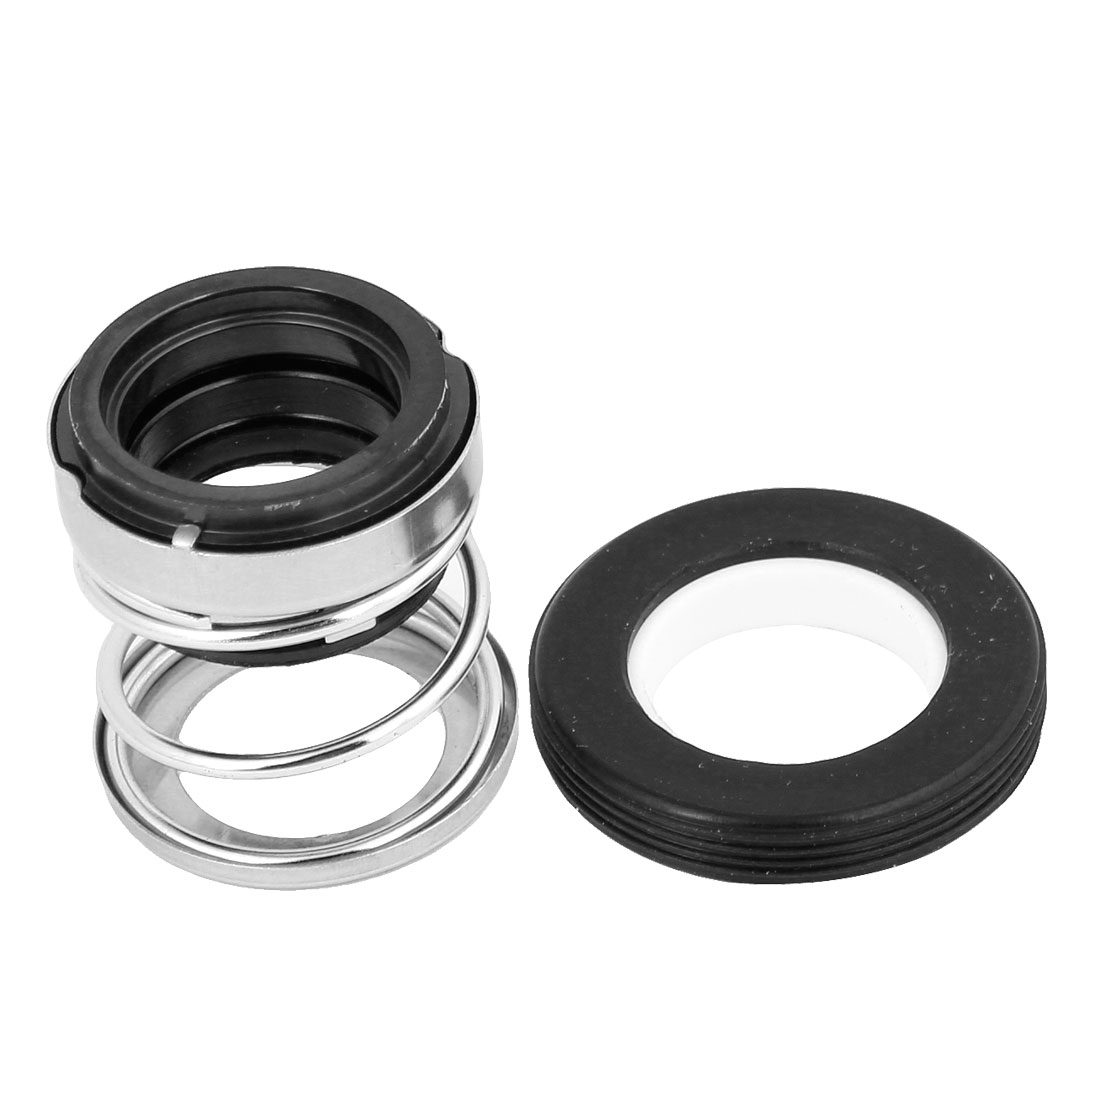 20mm Inner Dia Spring Loaded Water Pump Mechanical Shaft Seal Replacement